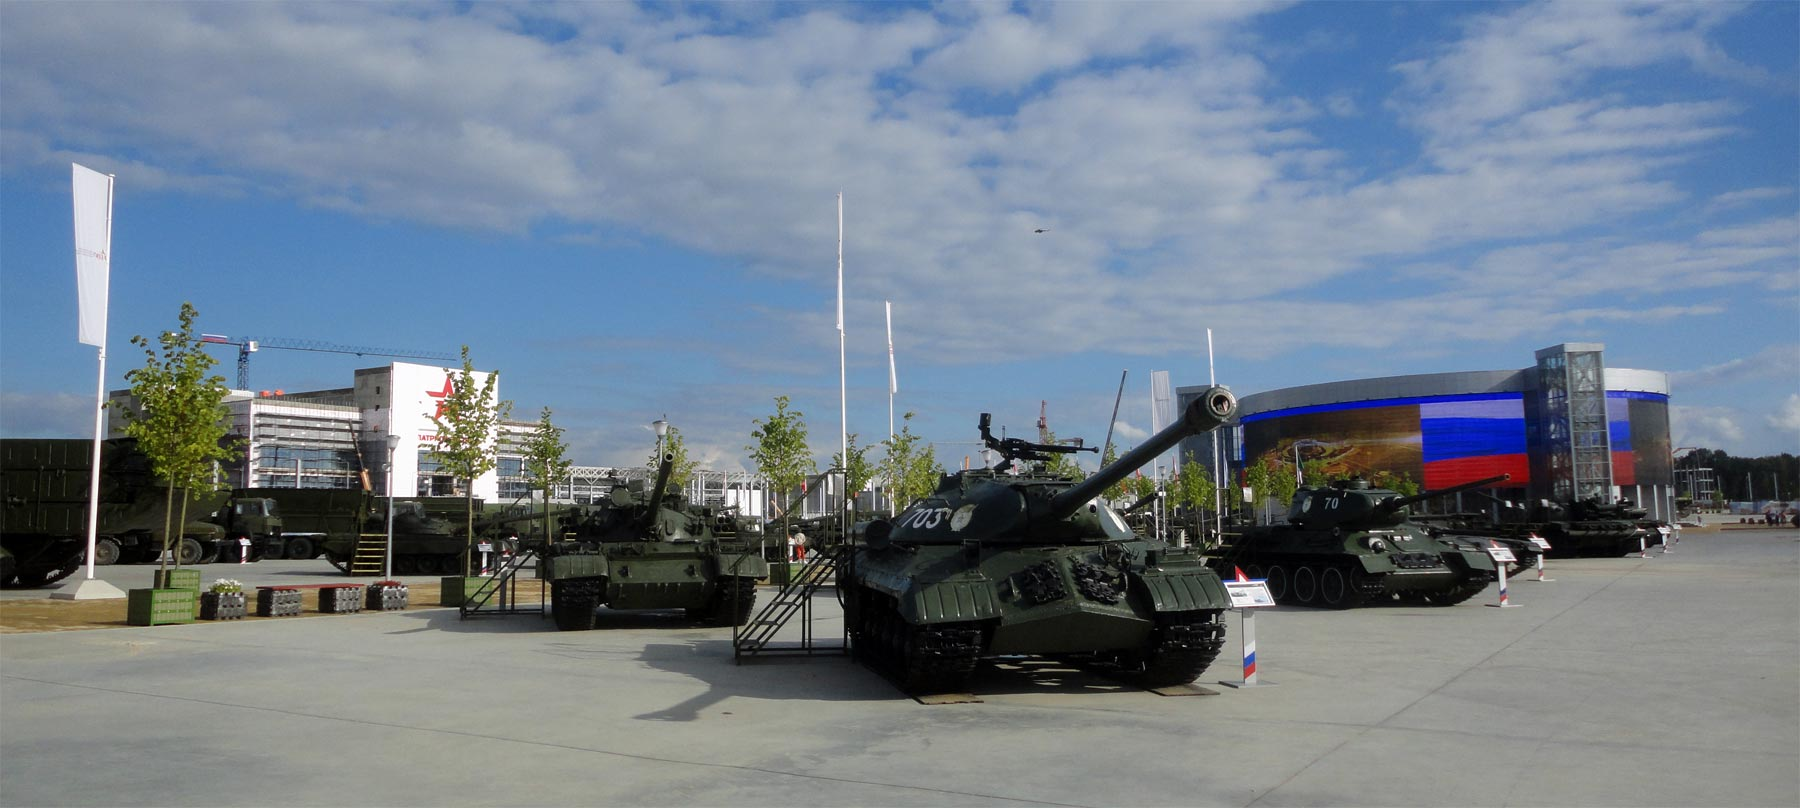 Patriot park, armored vehicles outdoor exhibition